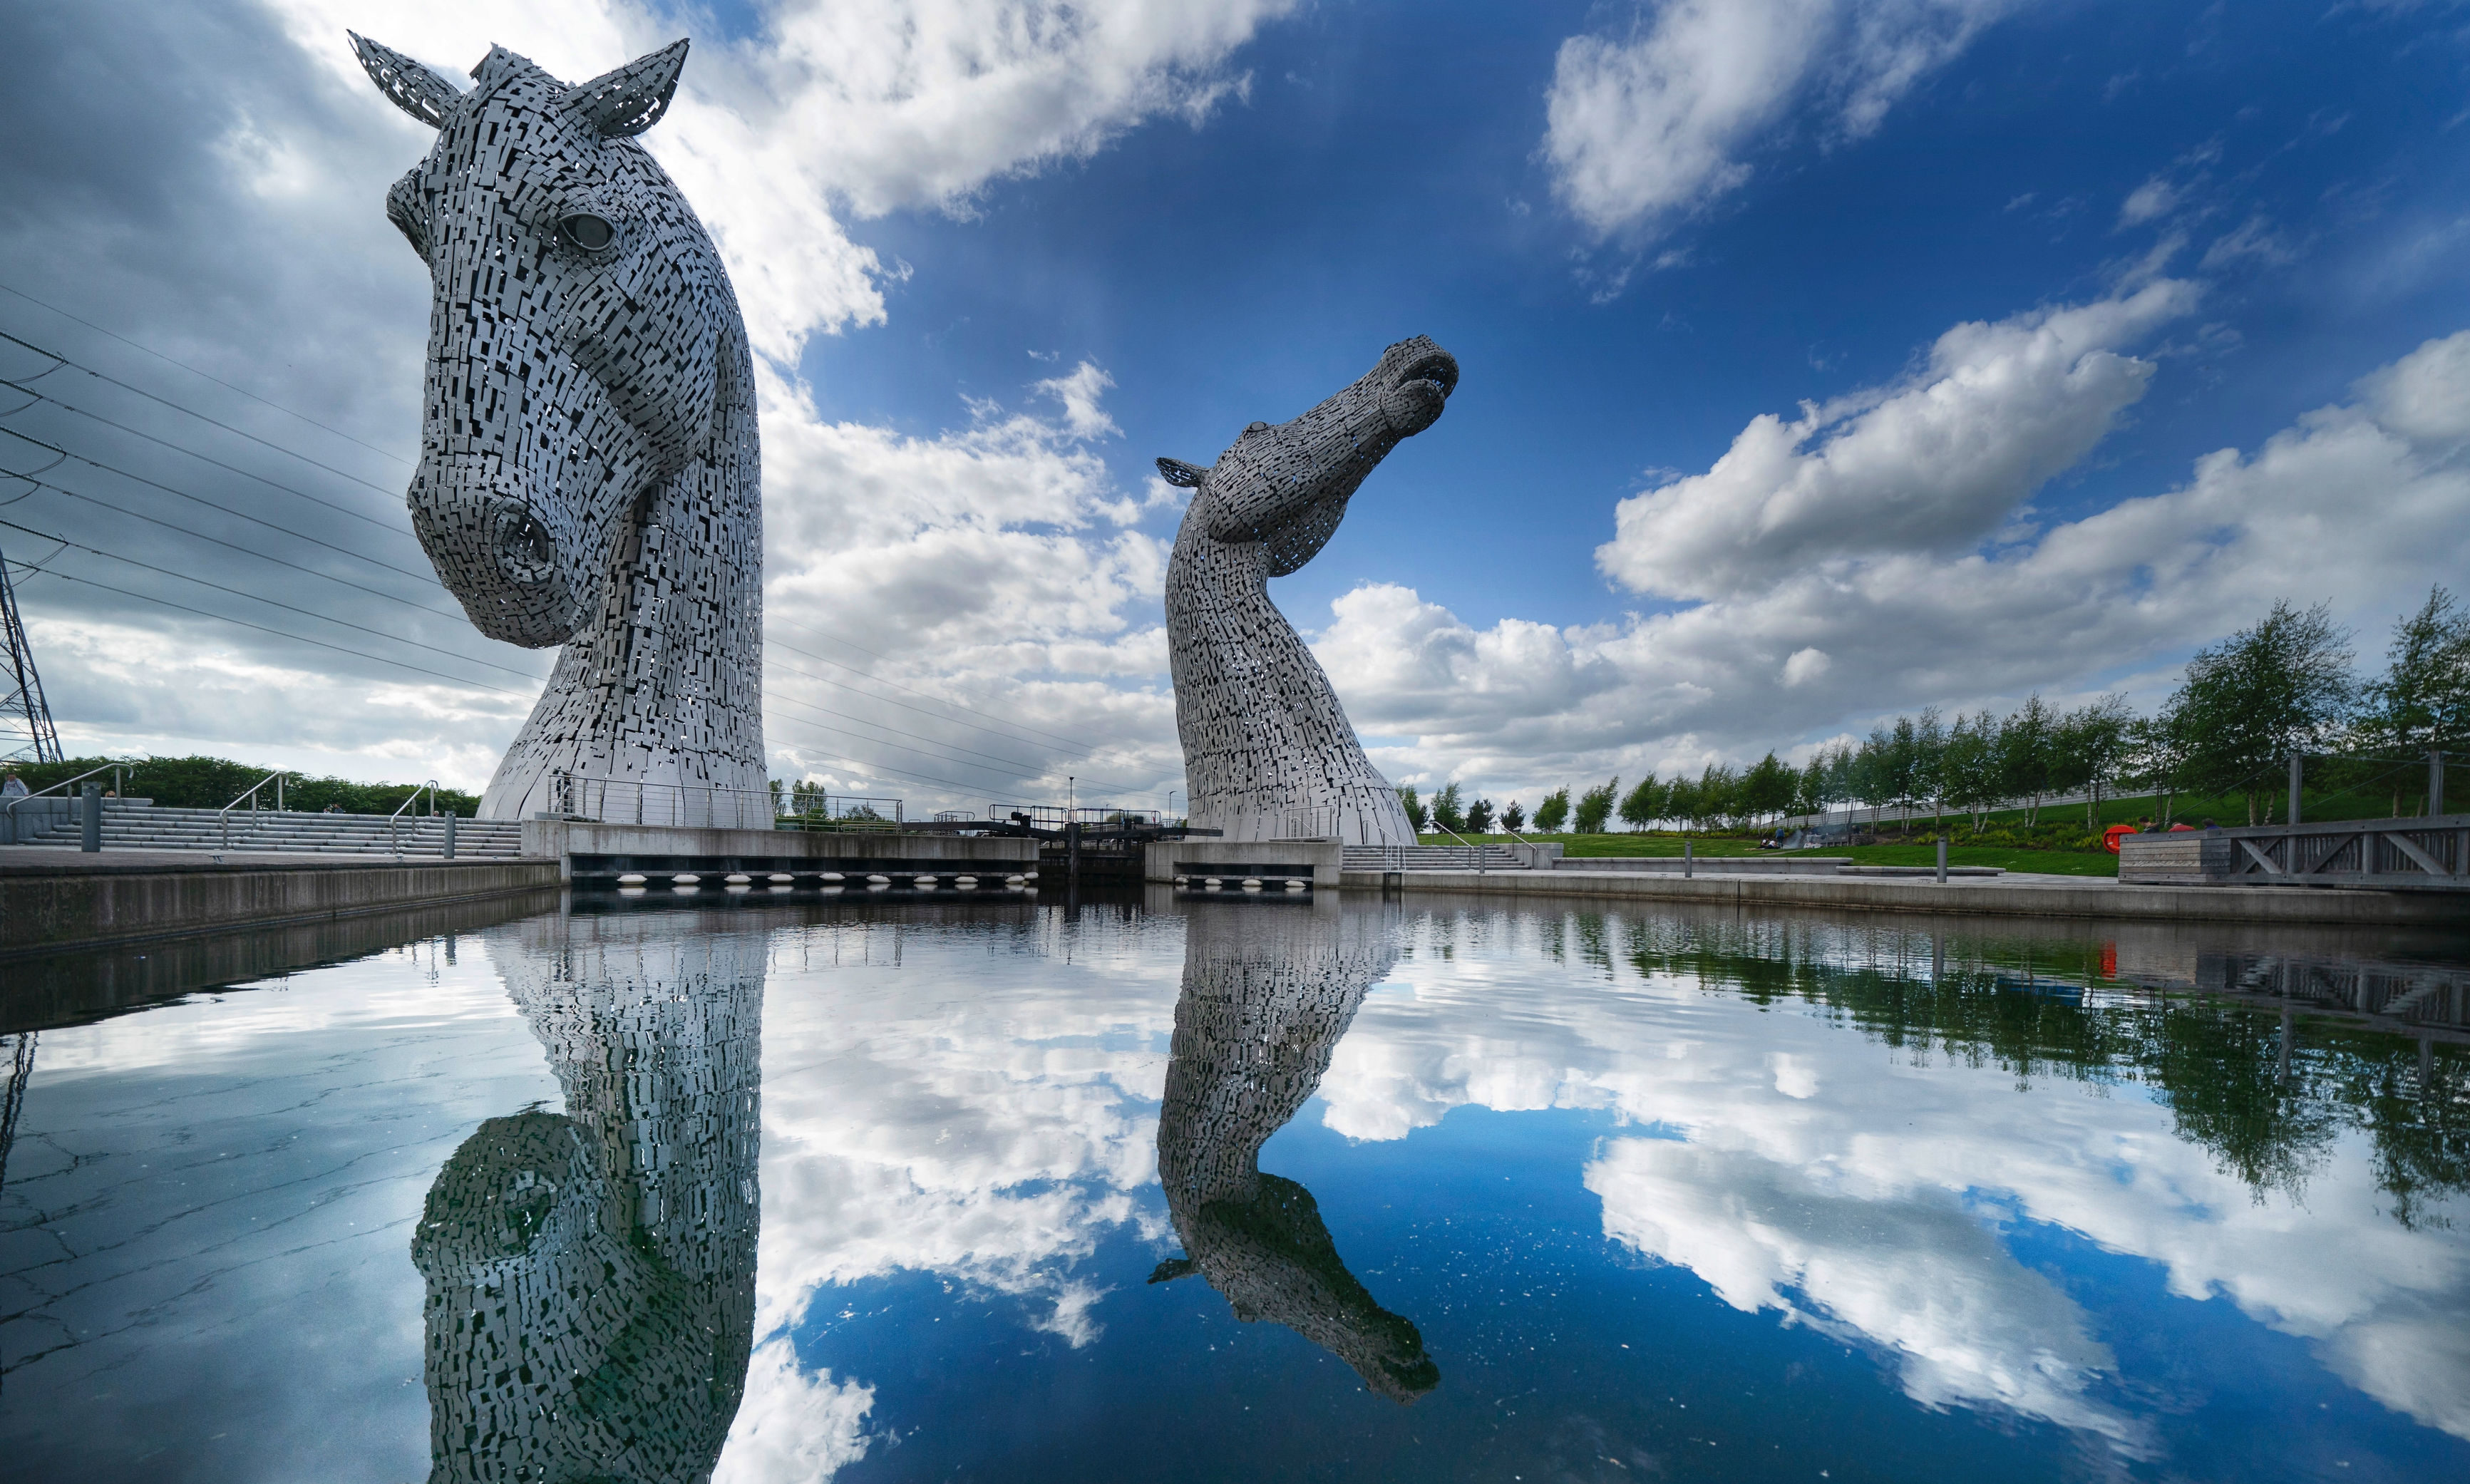 The Kelpies in Falkirk